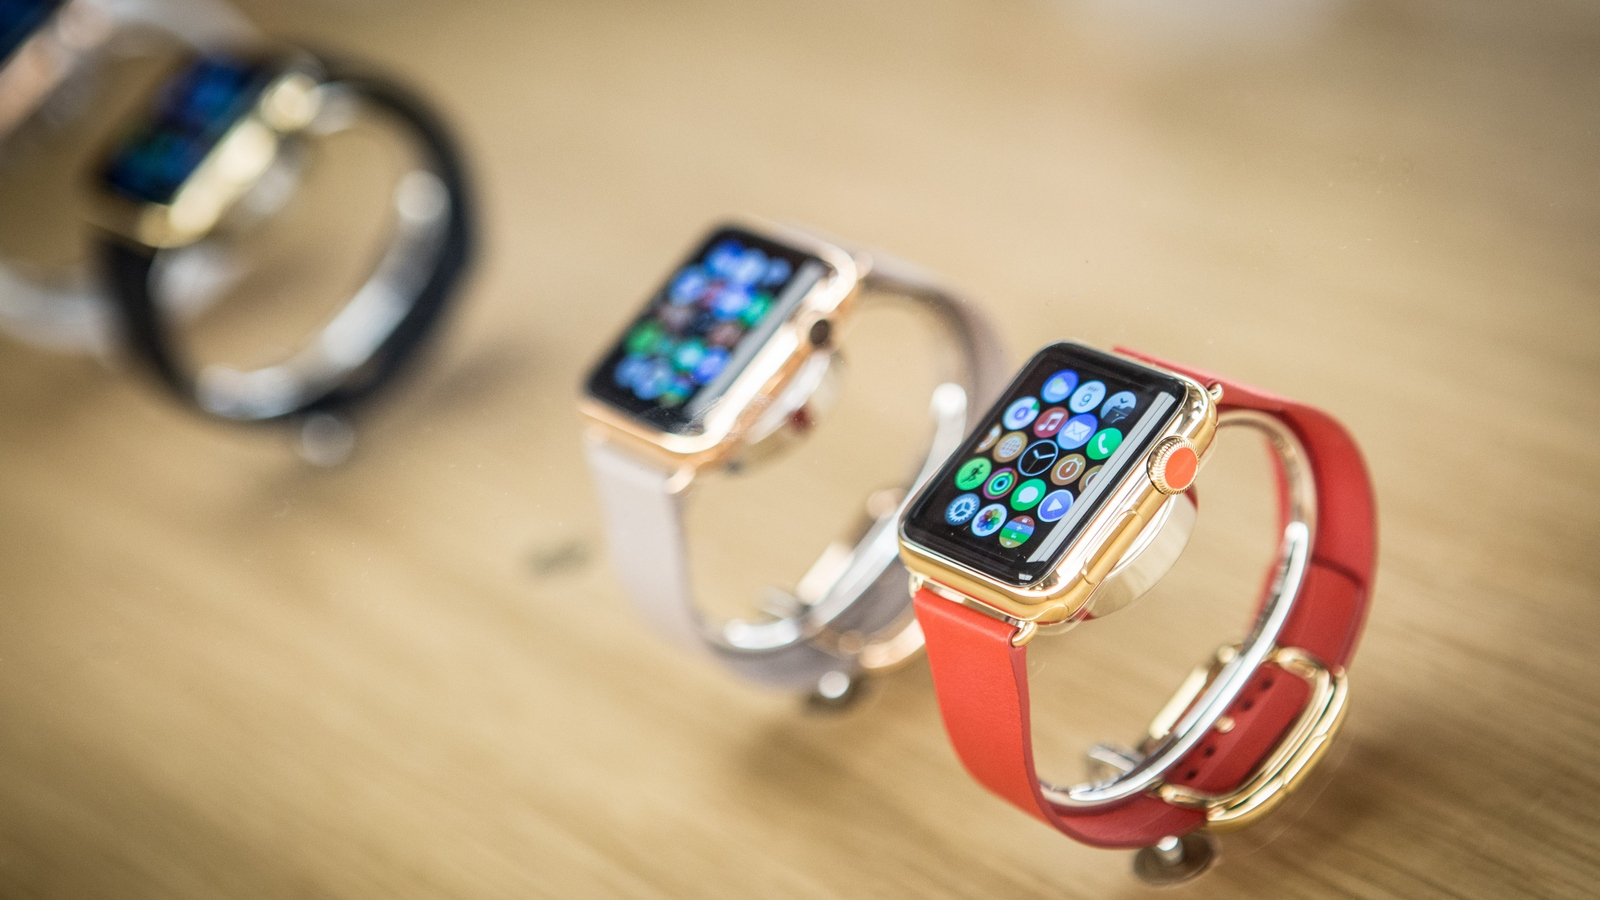 The most common misconceptions about the Apple Watch 2